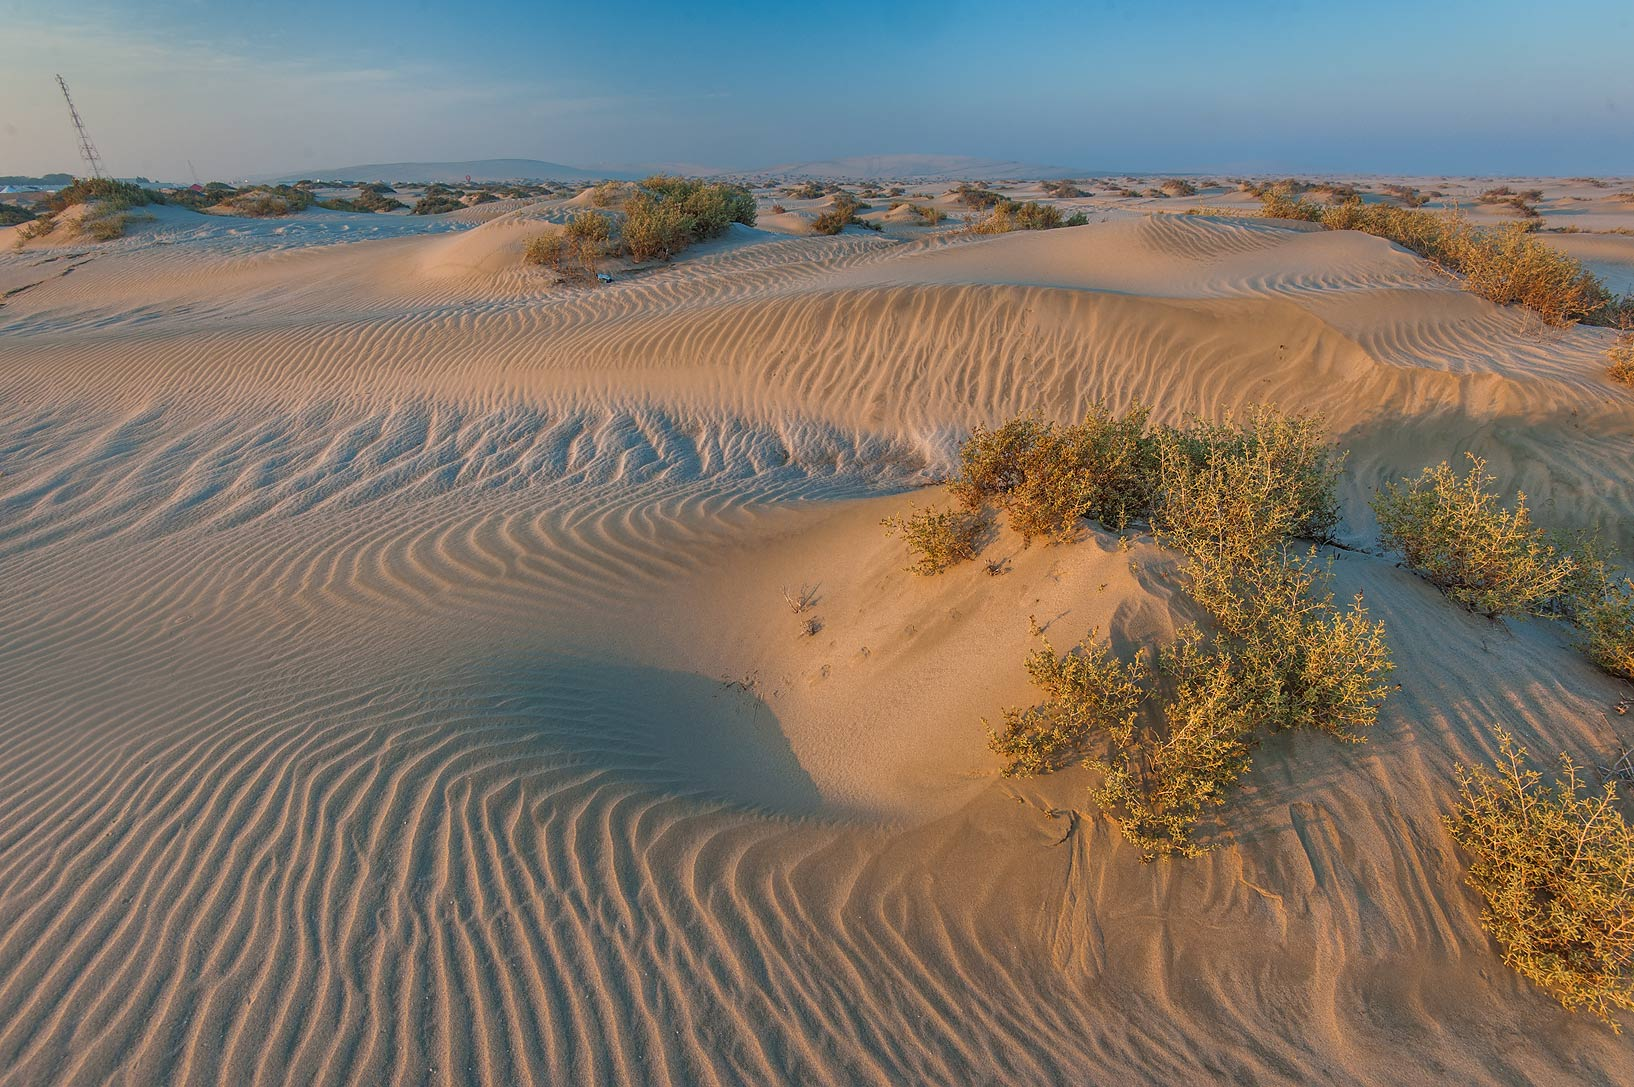 Wavy pattern of sand ripples and sand mounds with...Resort near Mesaieed. Southern Qatar